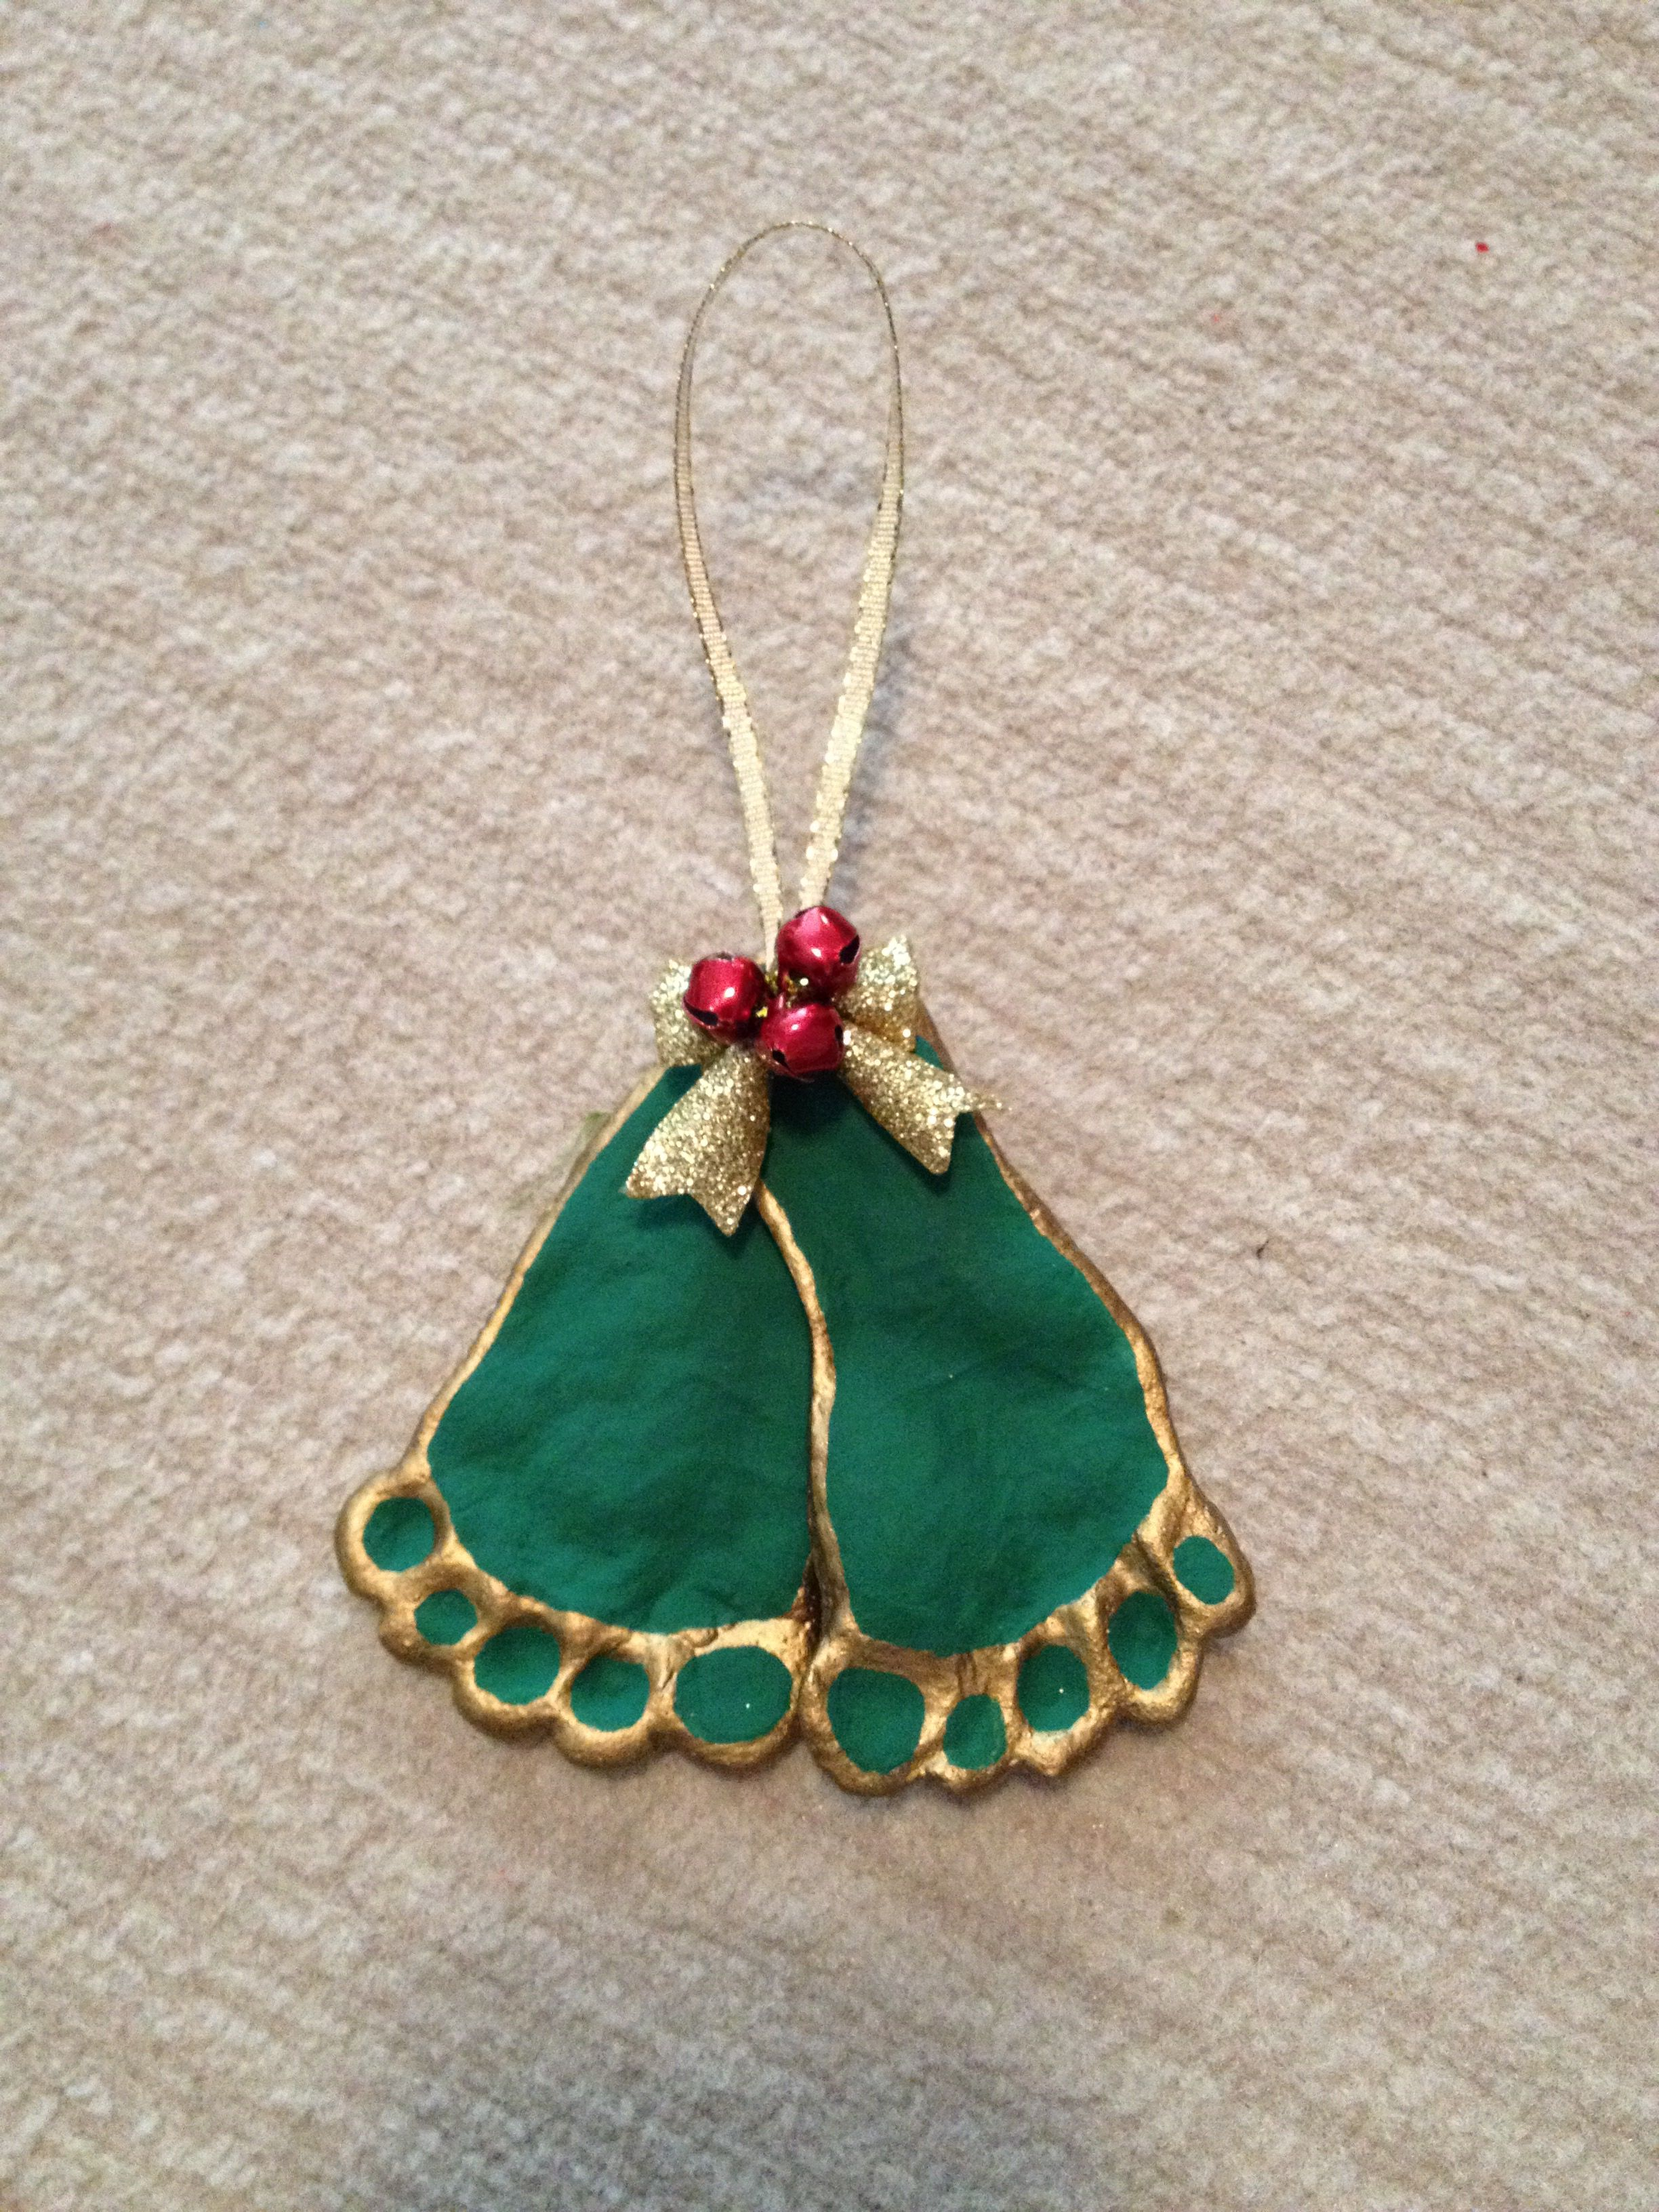 Michaels Christmas Crafts.Mistletoes Christmas Ornament Made With Salt Dough And